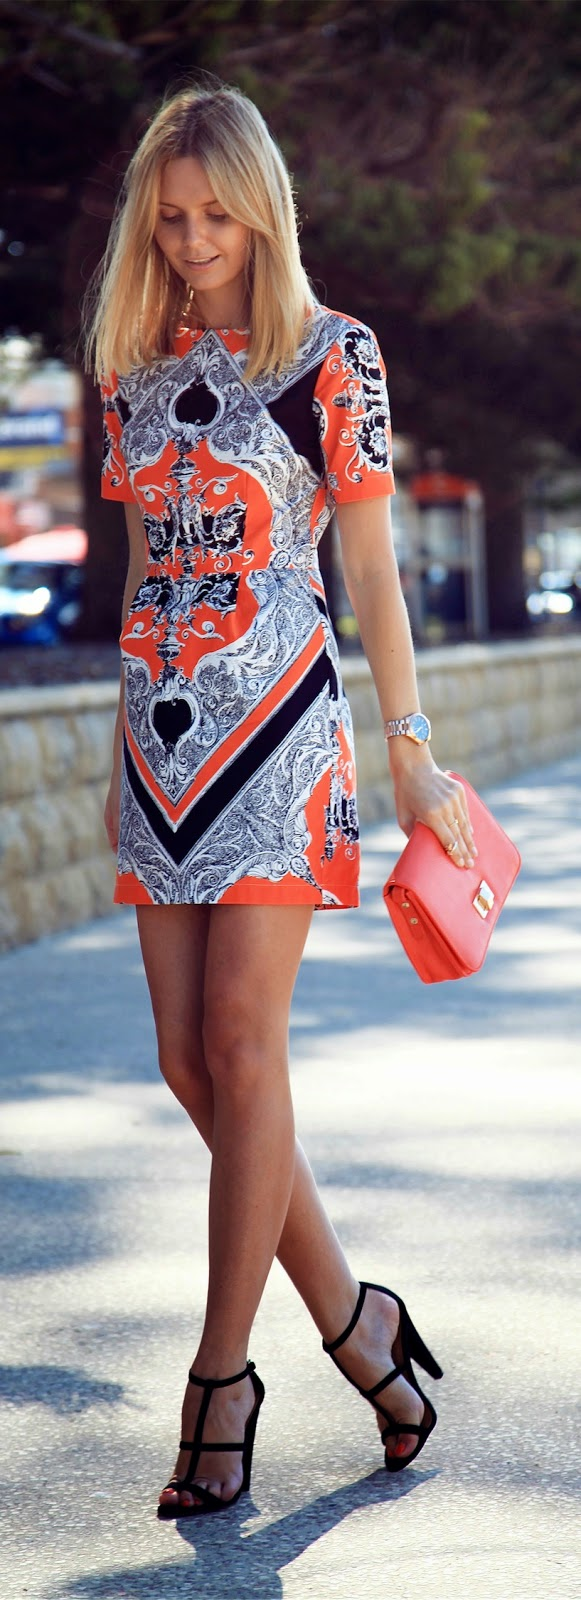 Cocktail Printed Mini Dress with Black Heels | Chic Street Outfits